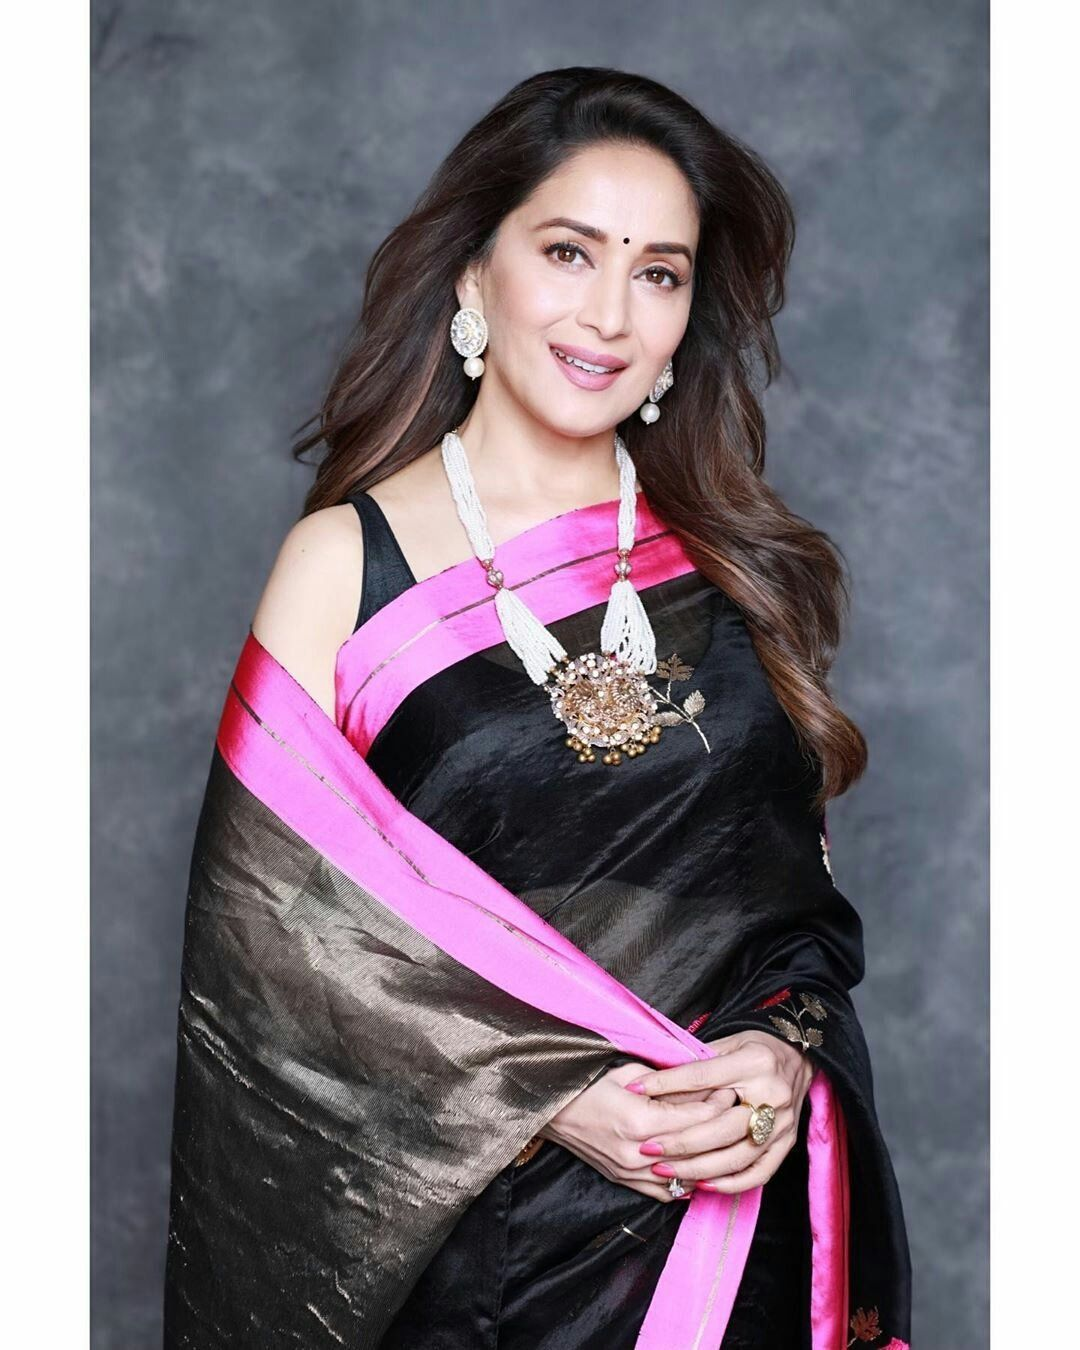 120 Madhuri Dixit Latest Pics, Full Hd Images And Photo -4822